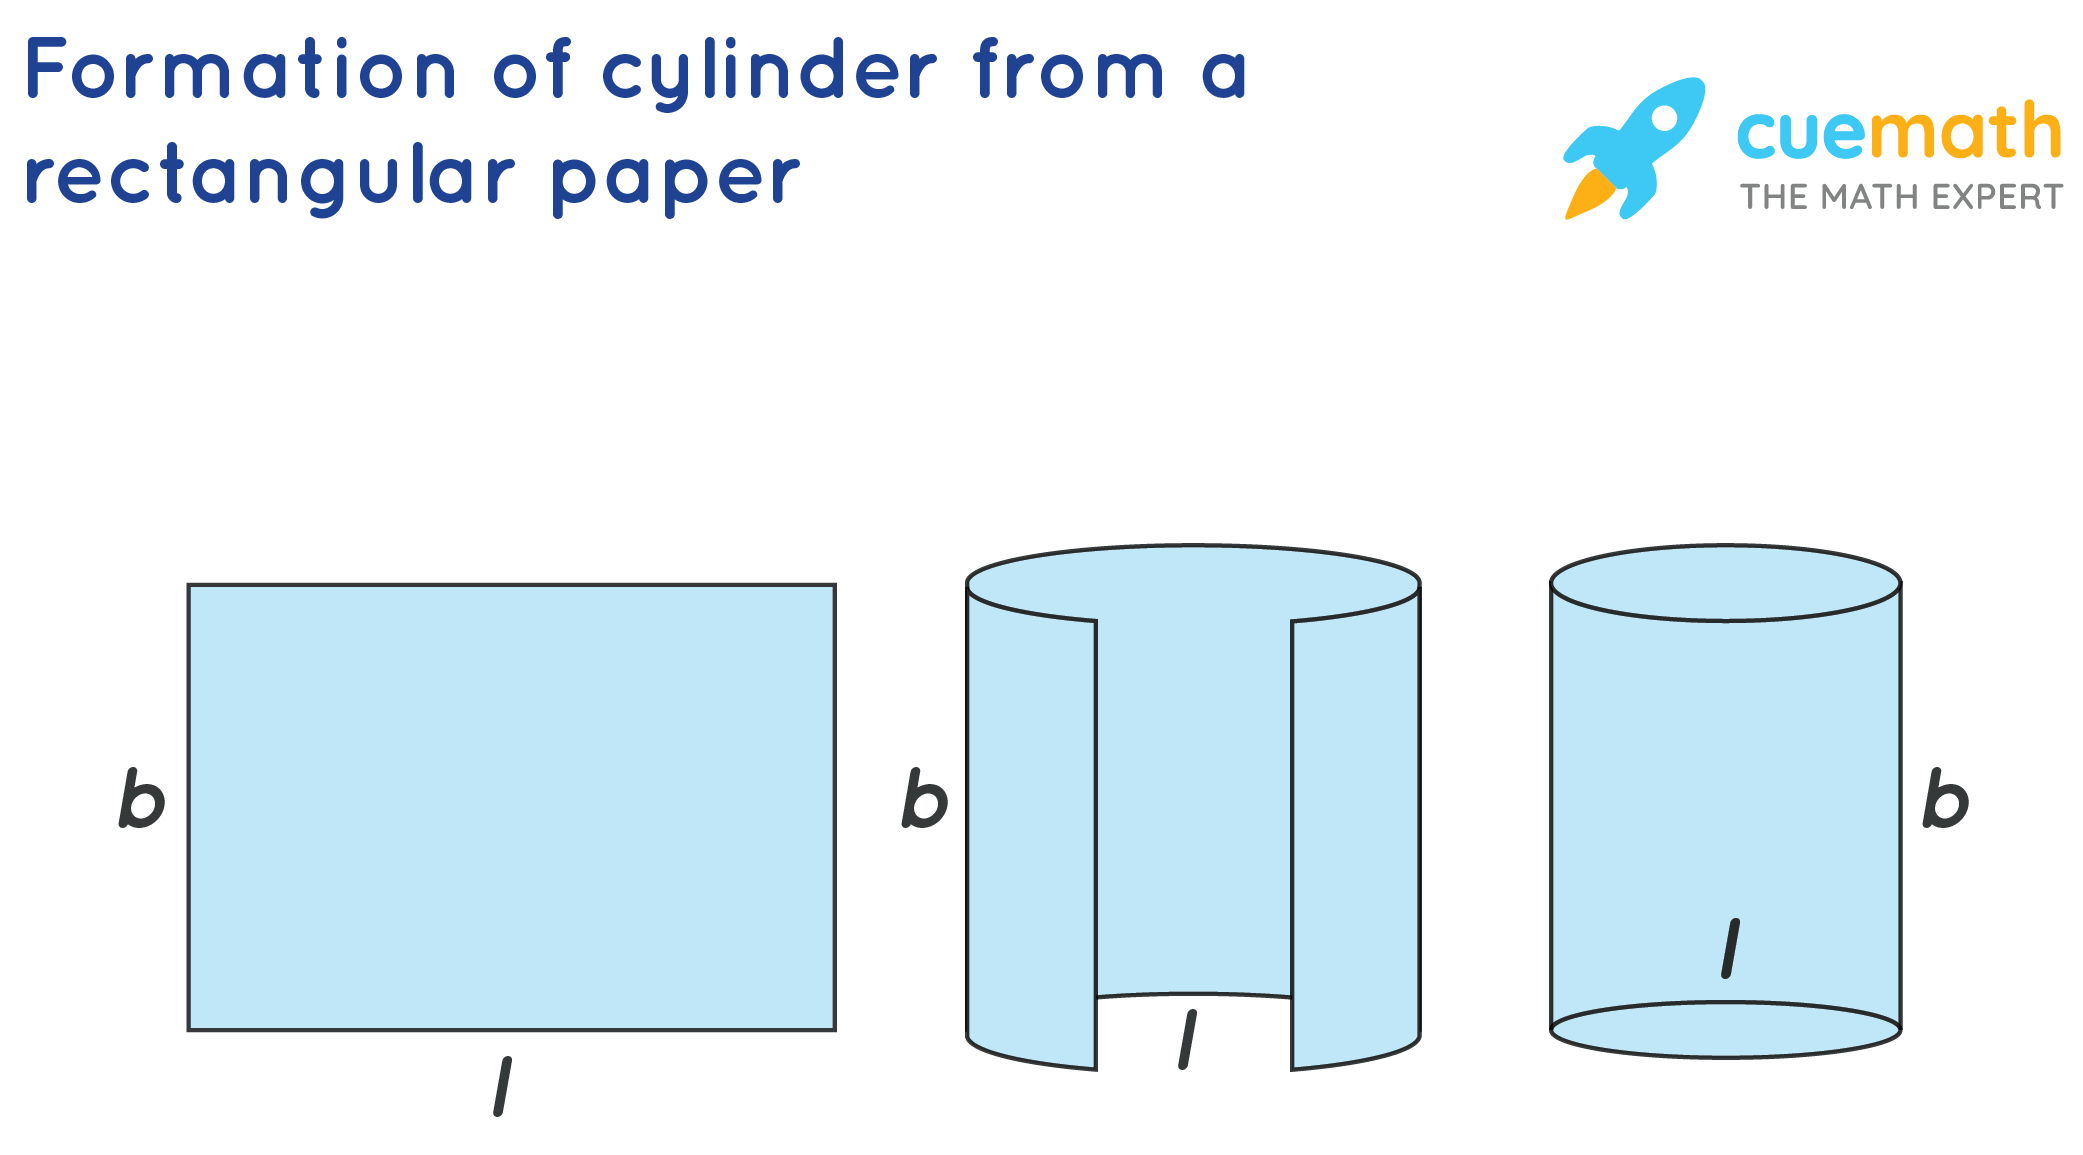 Formation of cylinder from a rectangular paper